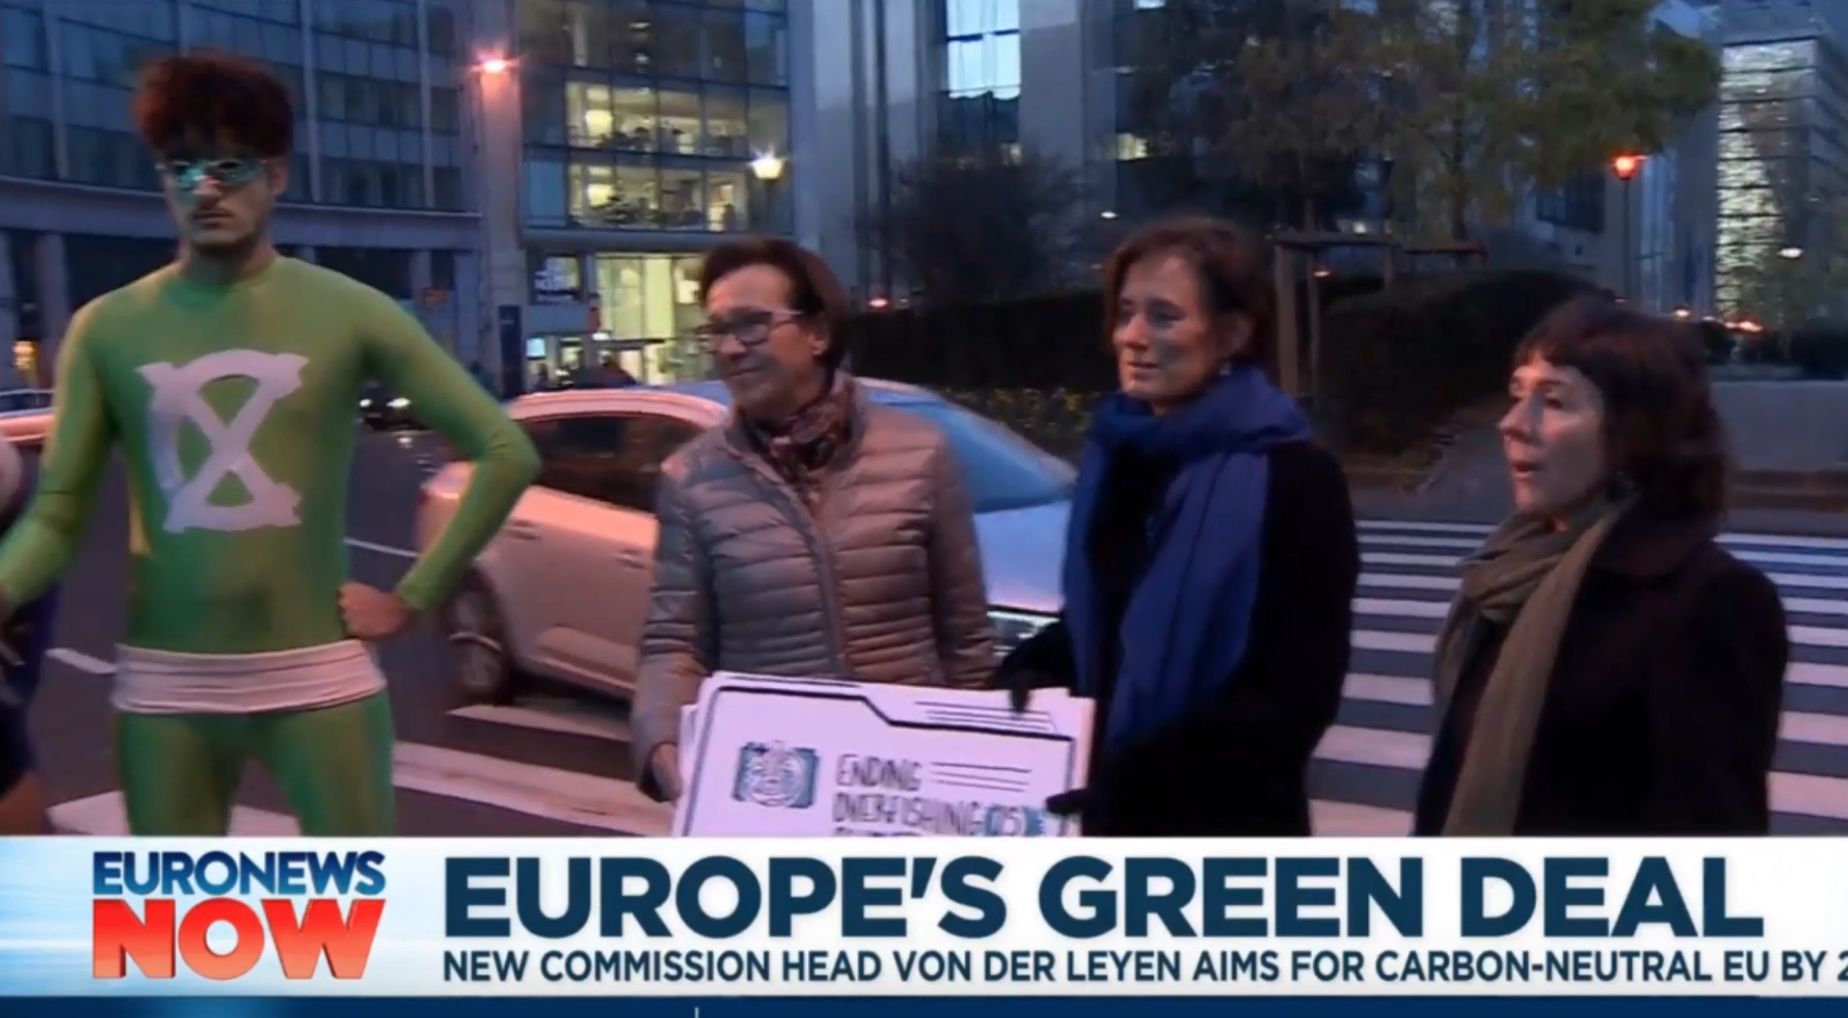 Euronews: Ending ovefishing is climate action